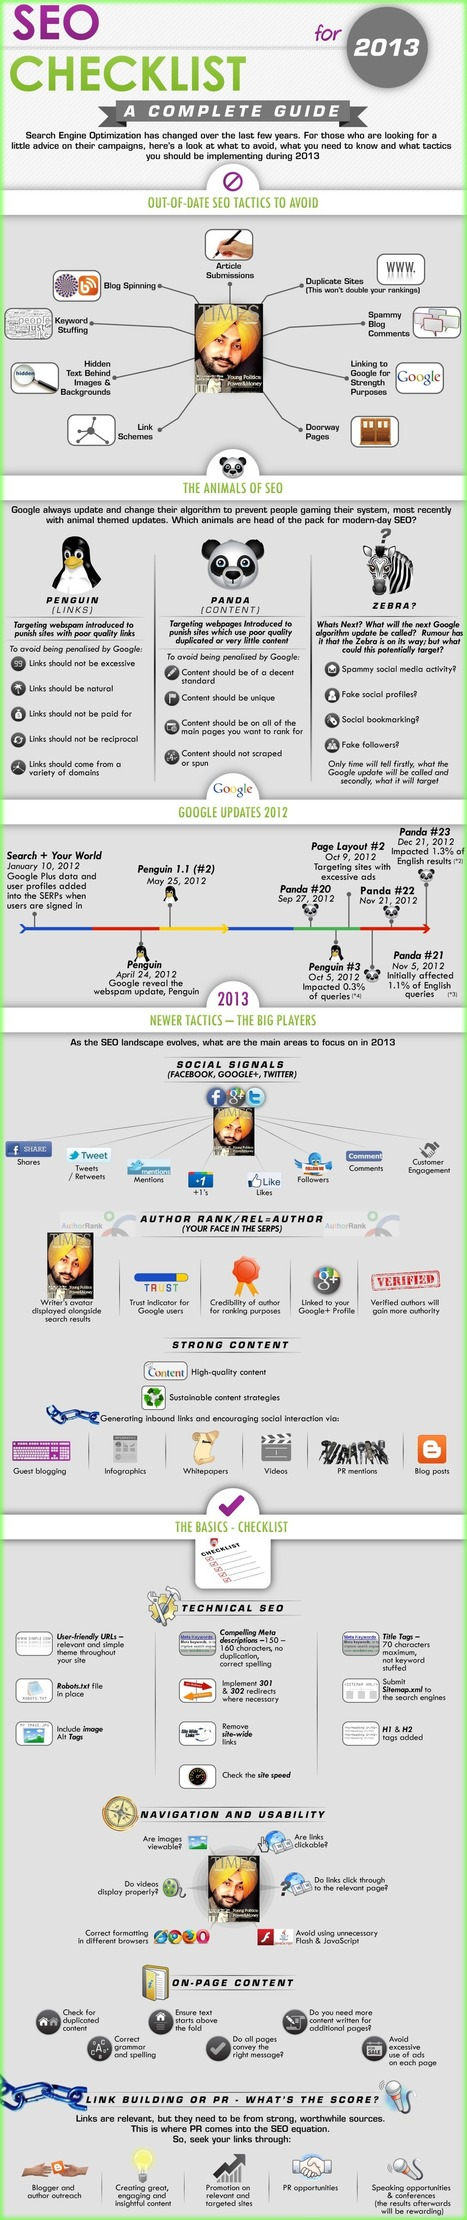 SEO_Checklist_2013:Complete Infographic_Guide | puzzledhalf | Scoop.it